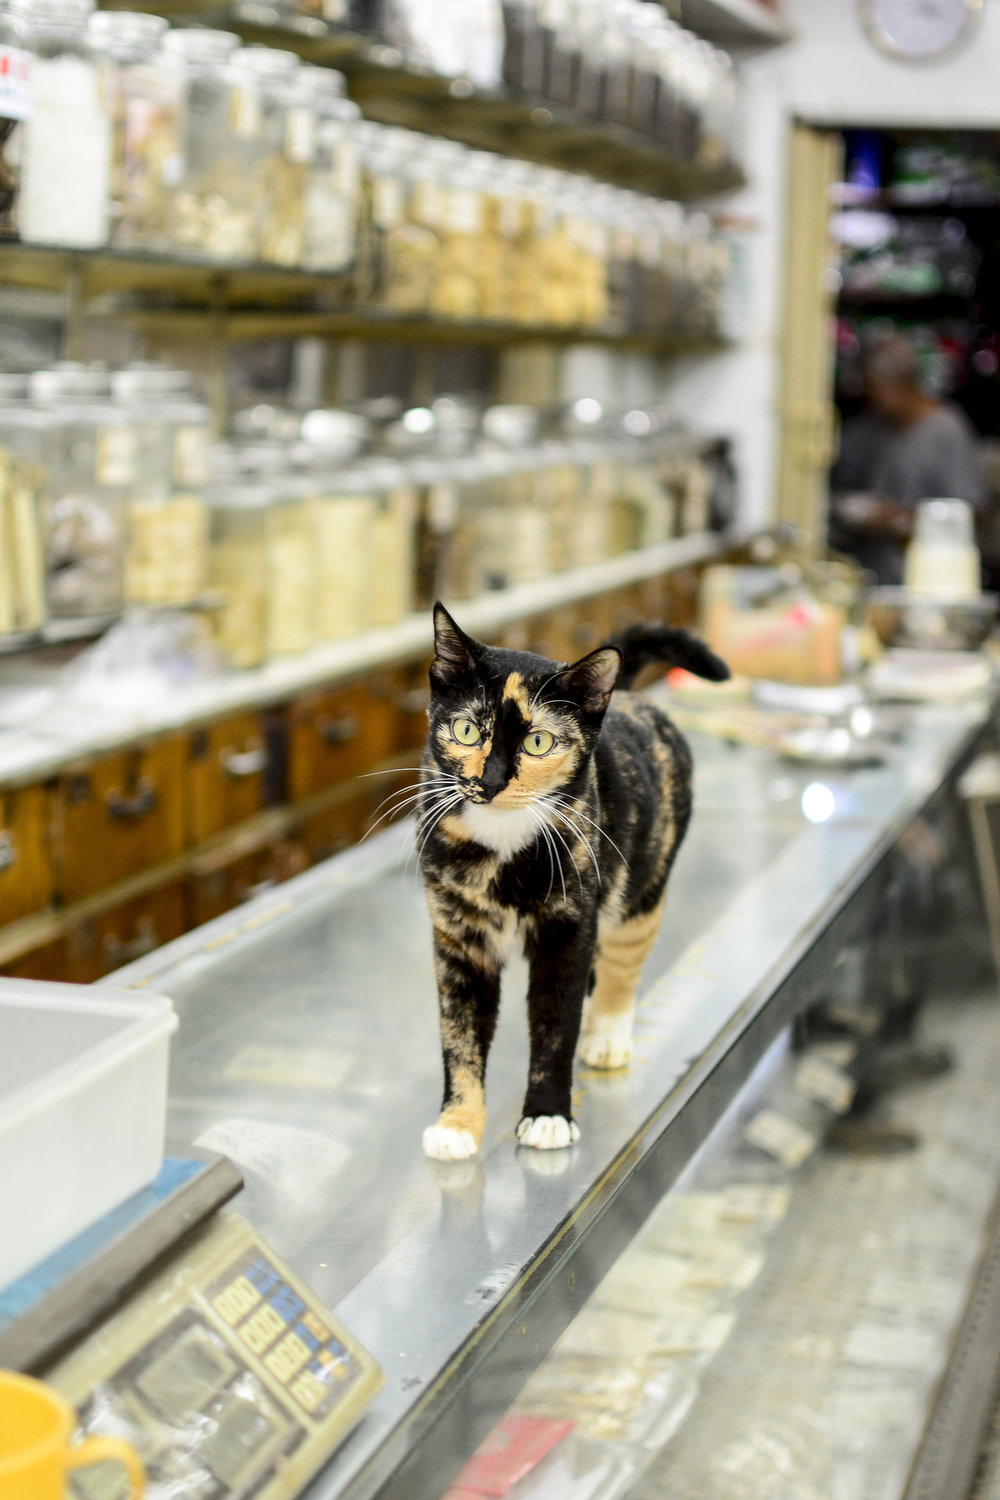 Cat in traditional Chinese Apothecary on Canton Road (2018). As of today, my favorite cat image taken during a Hong Kong Photo Tour/Lesson.